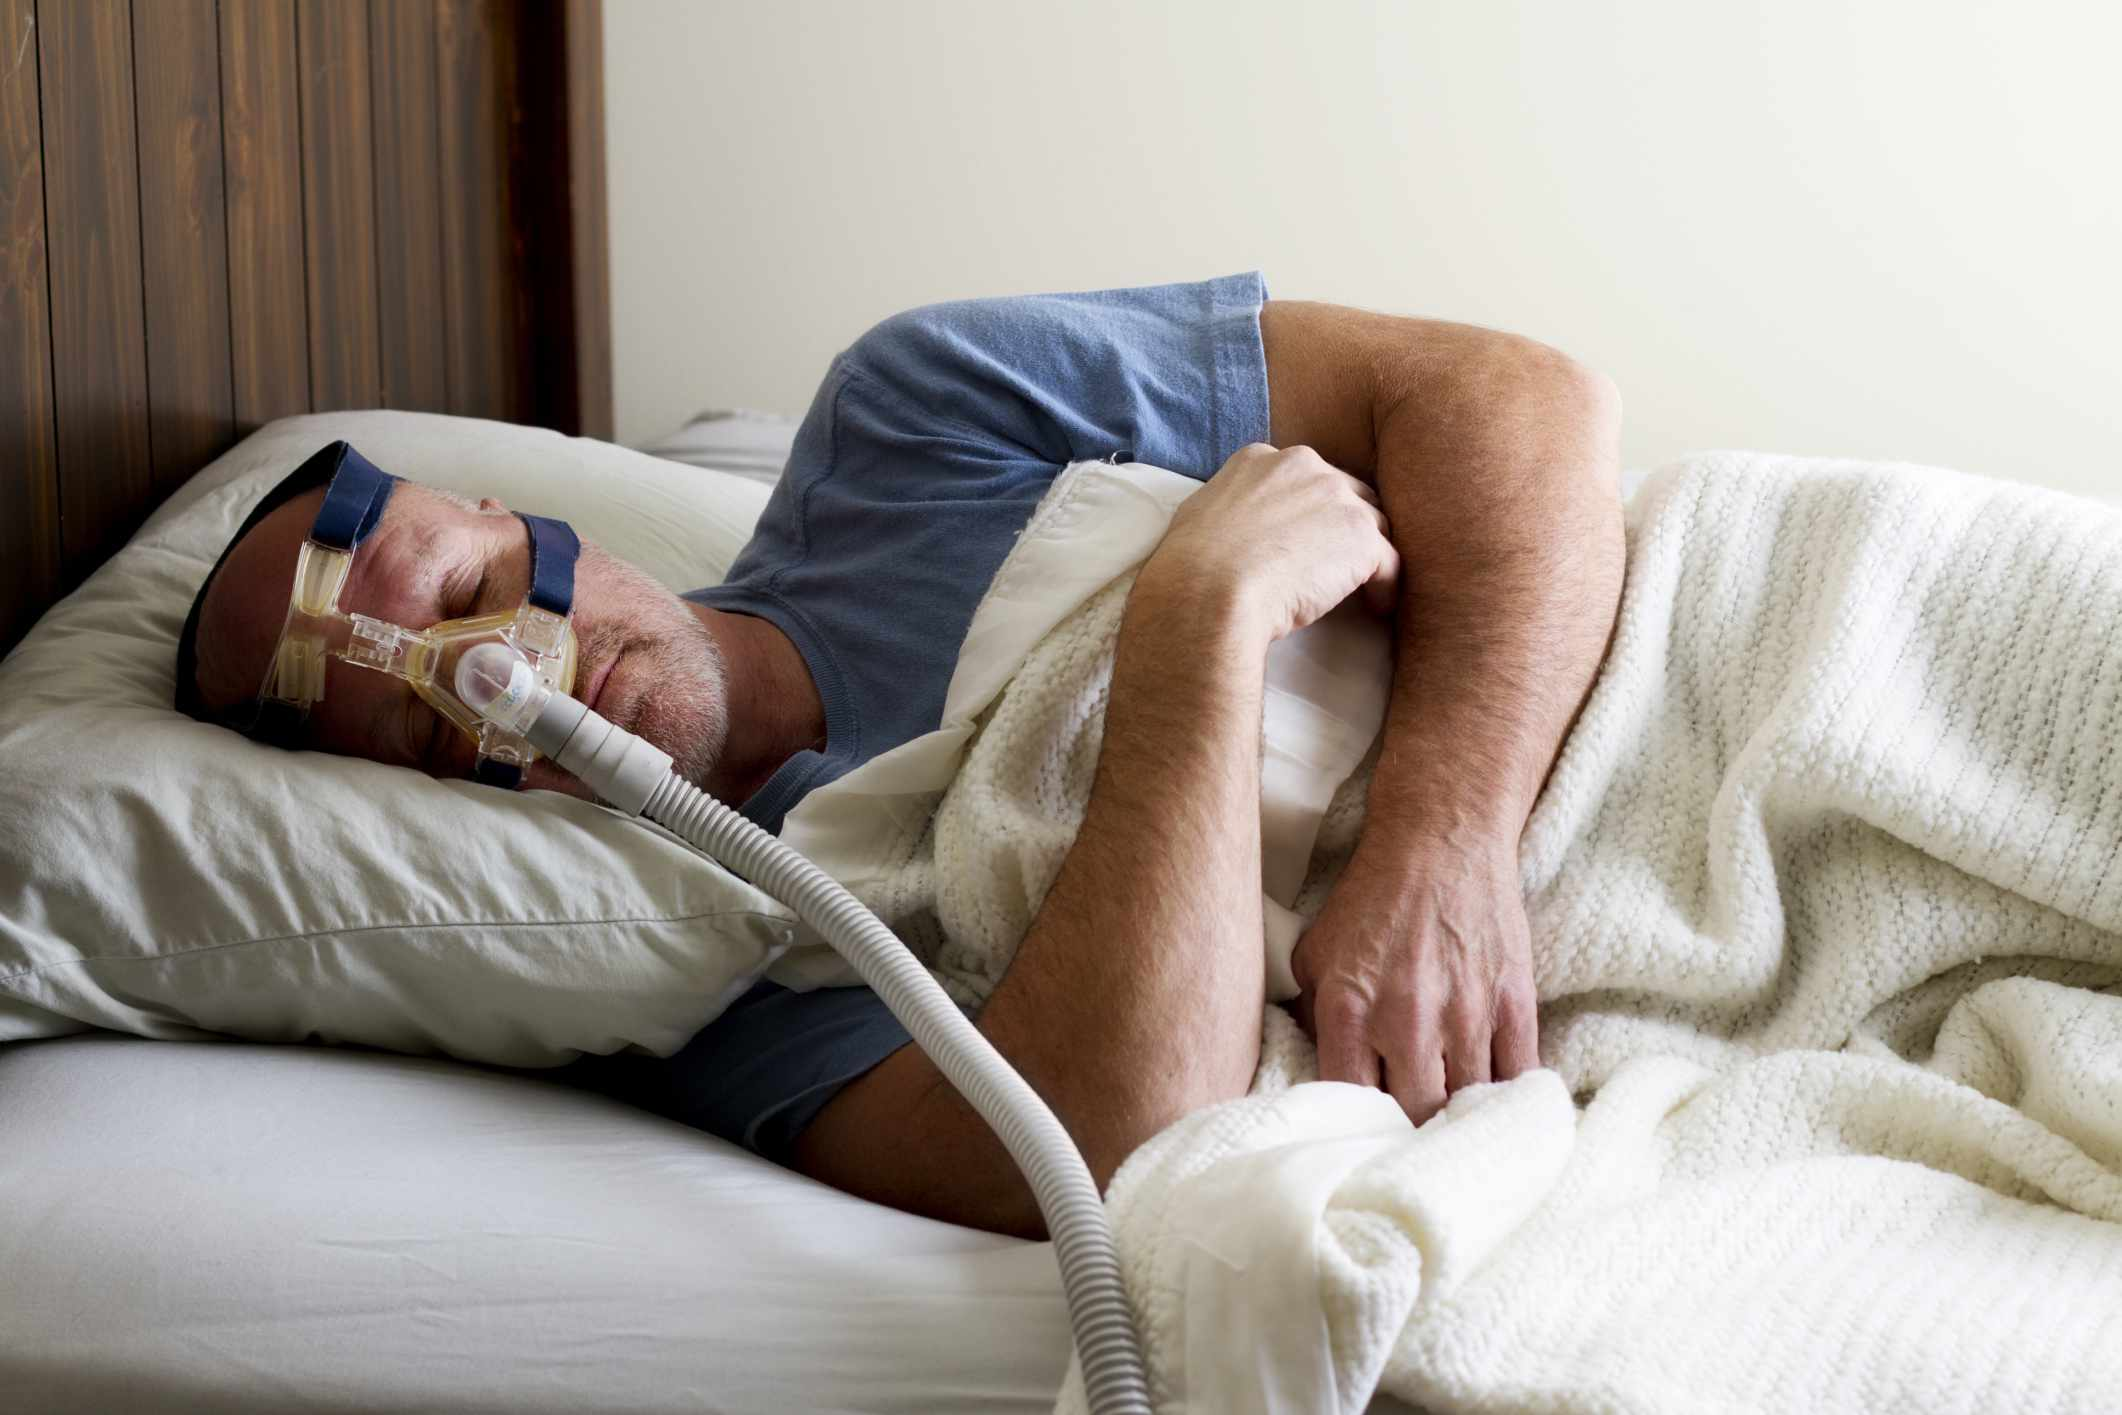 Man with sleep apnea and CPAP in bed